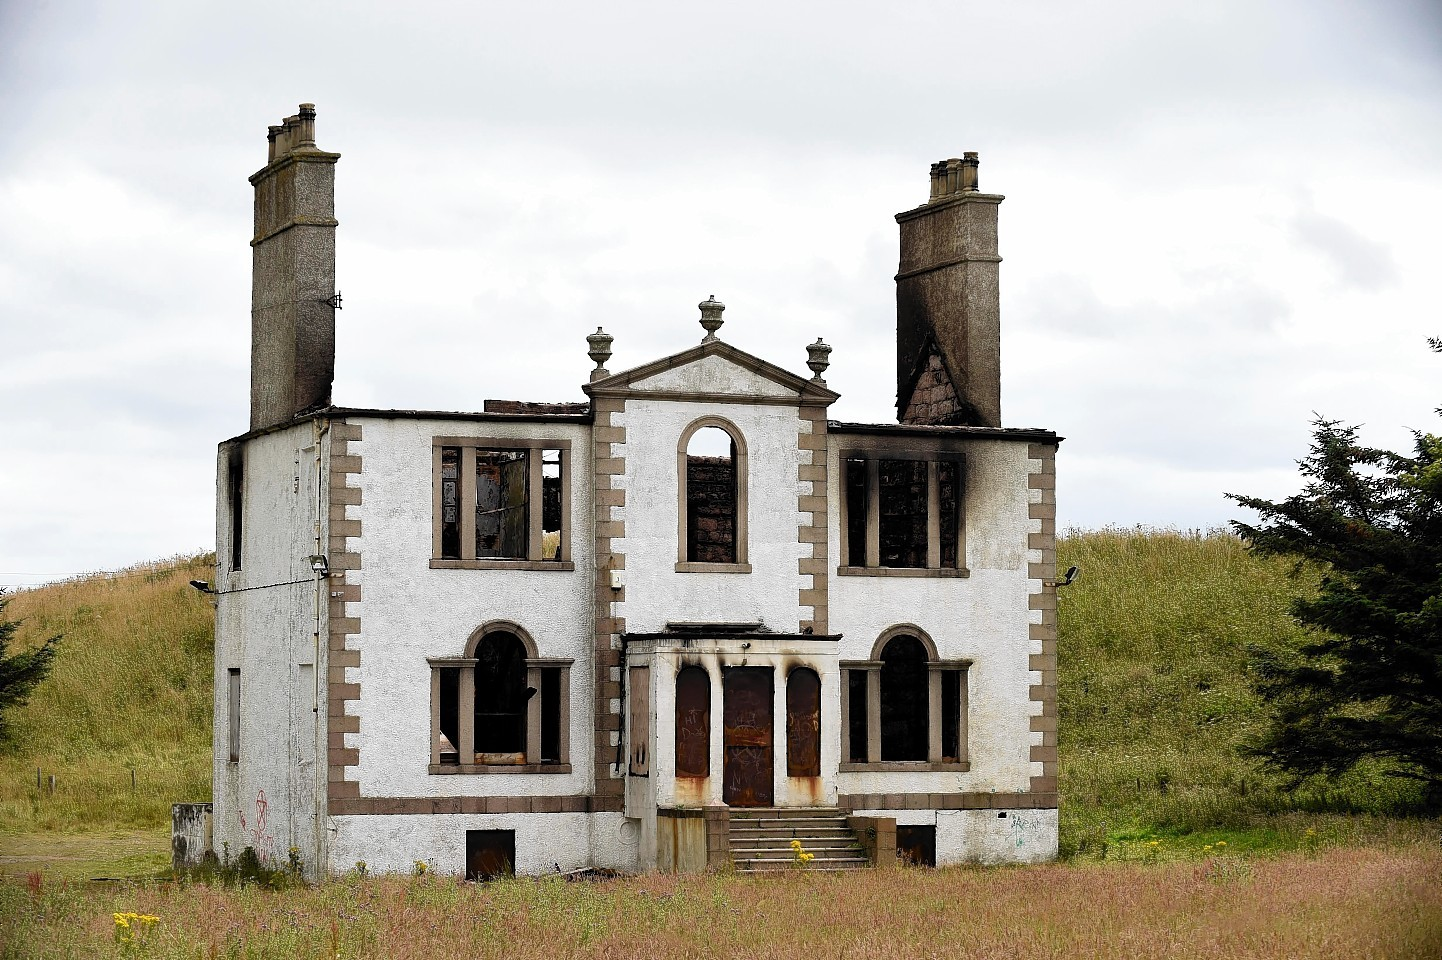 The gutted remains of Sandford Lodge